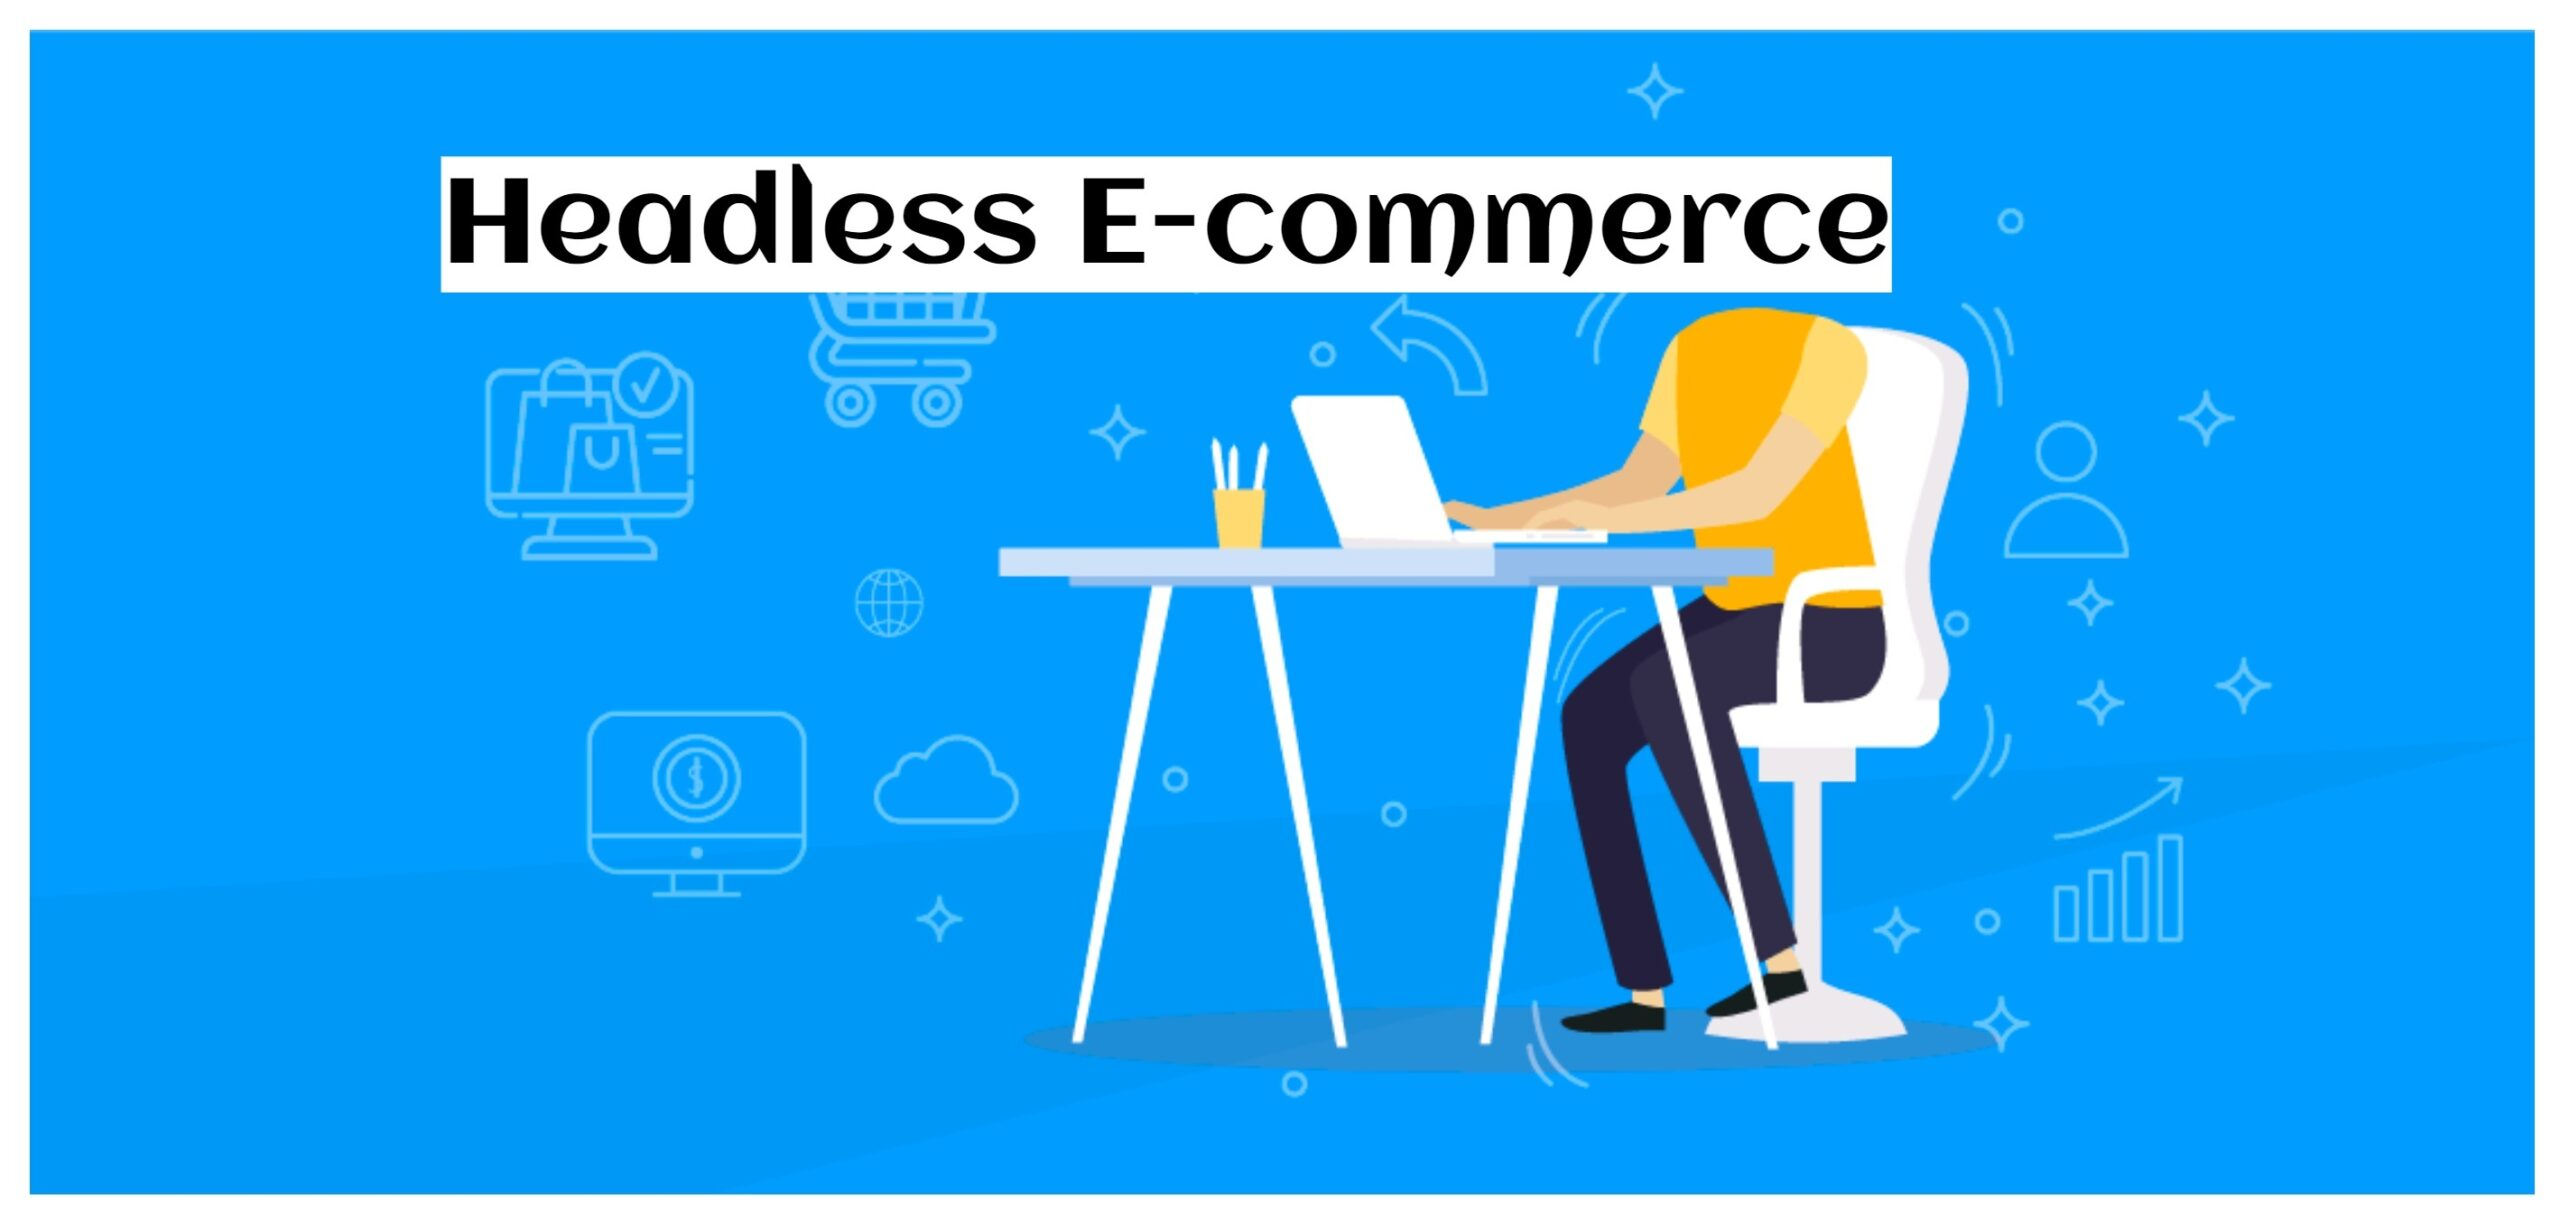 What is Headless E-commerce?